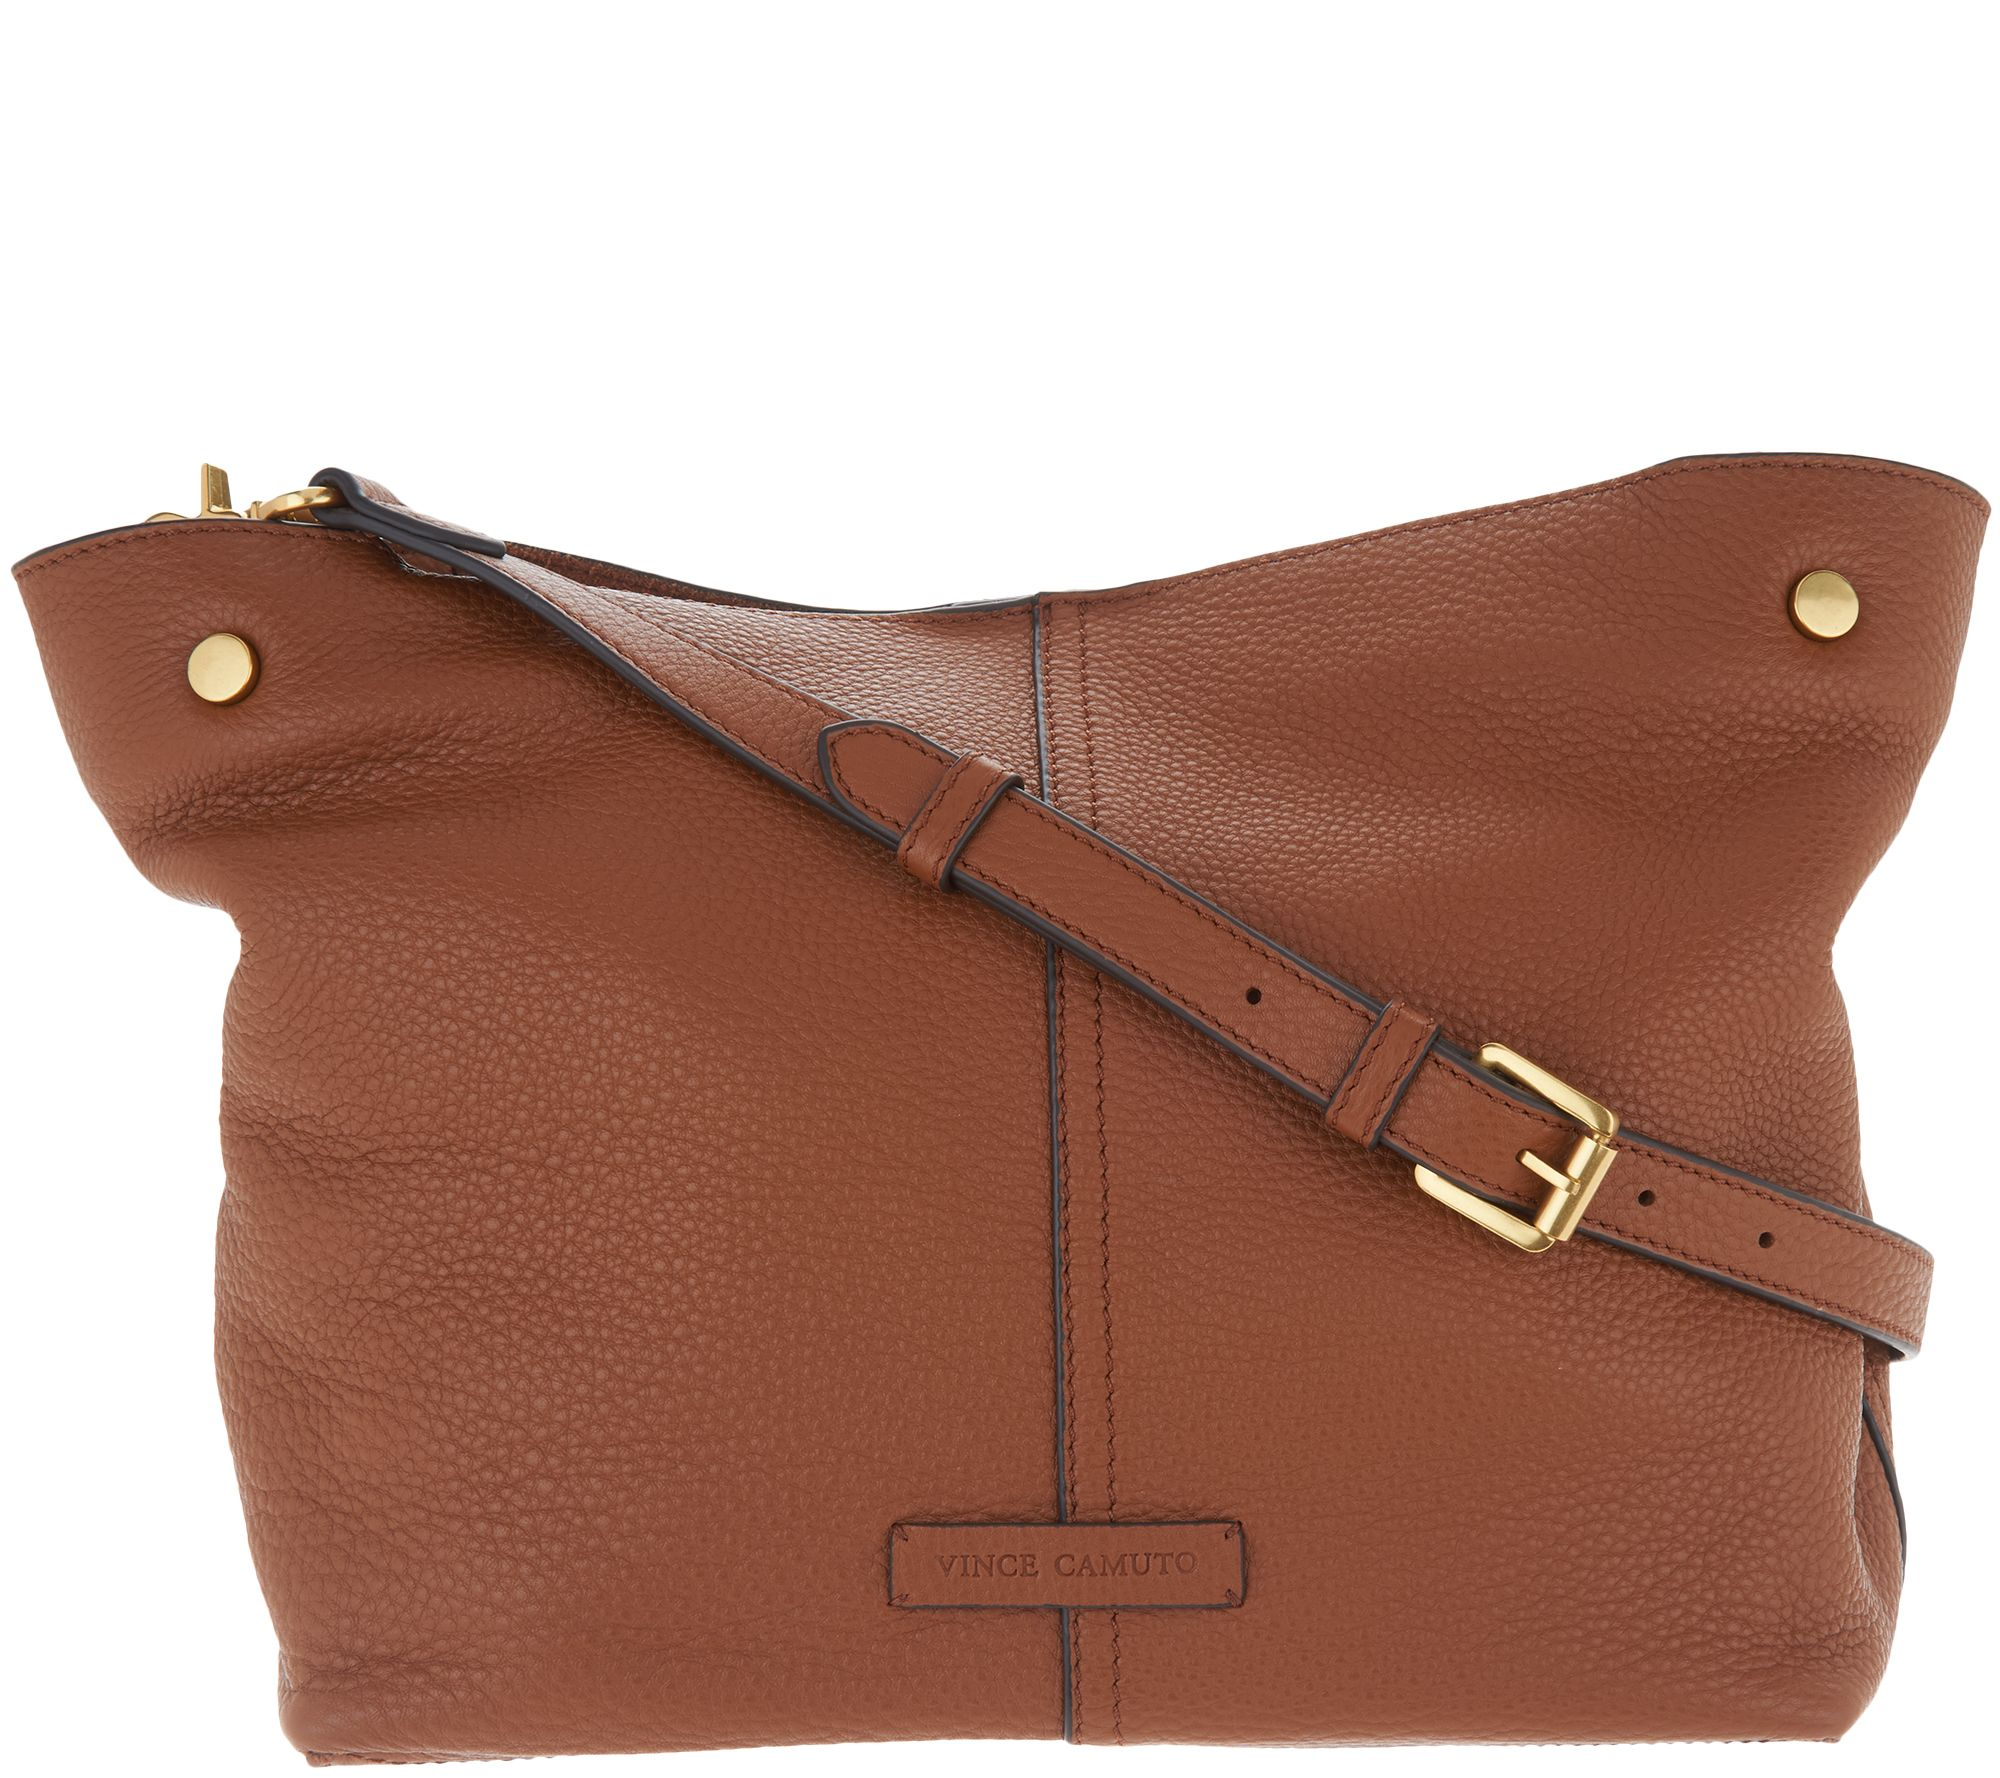 5166d0edf60df Vince Camuto Leather Small Tote - Niki - Page 1 — QVC.com